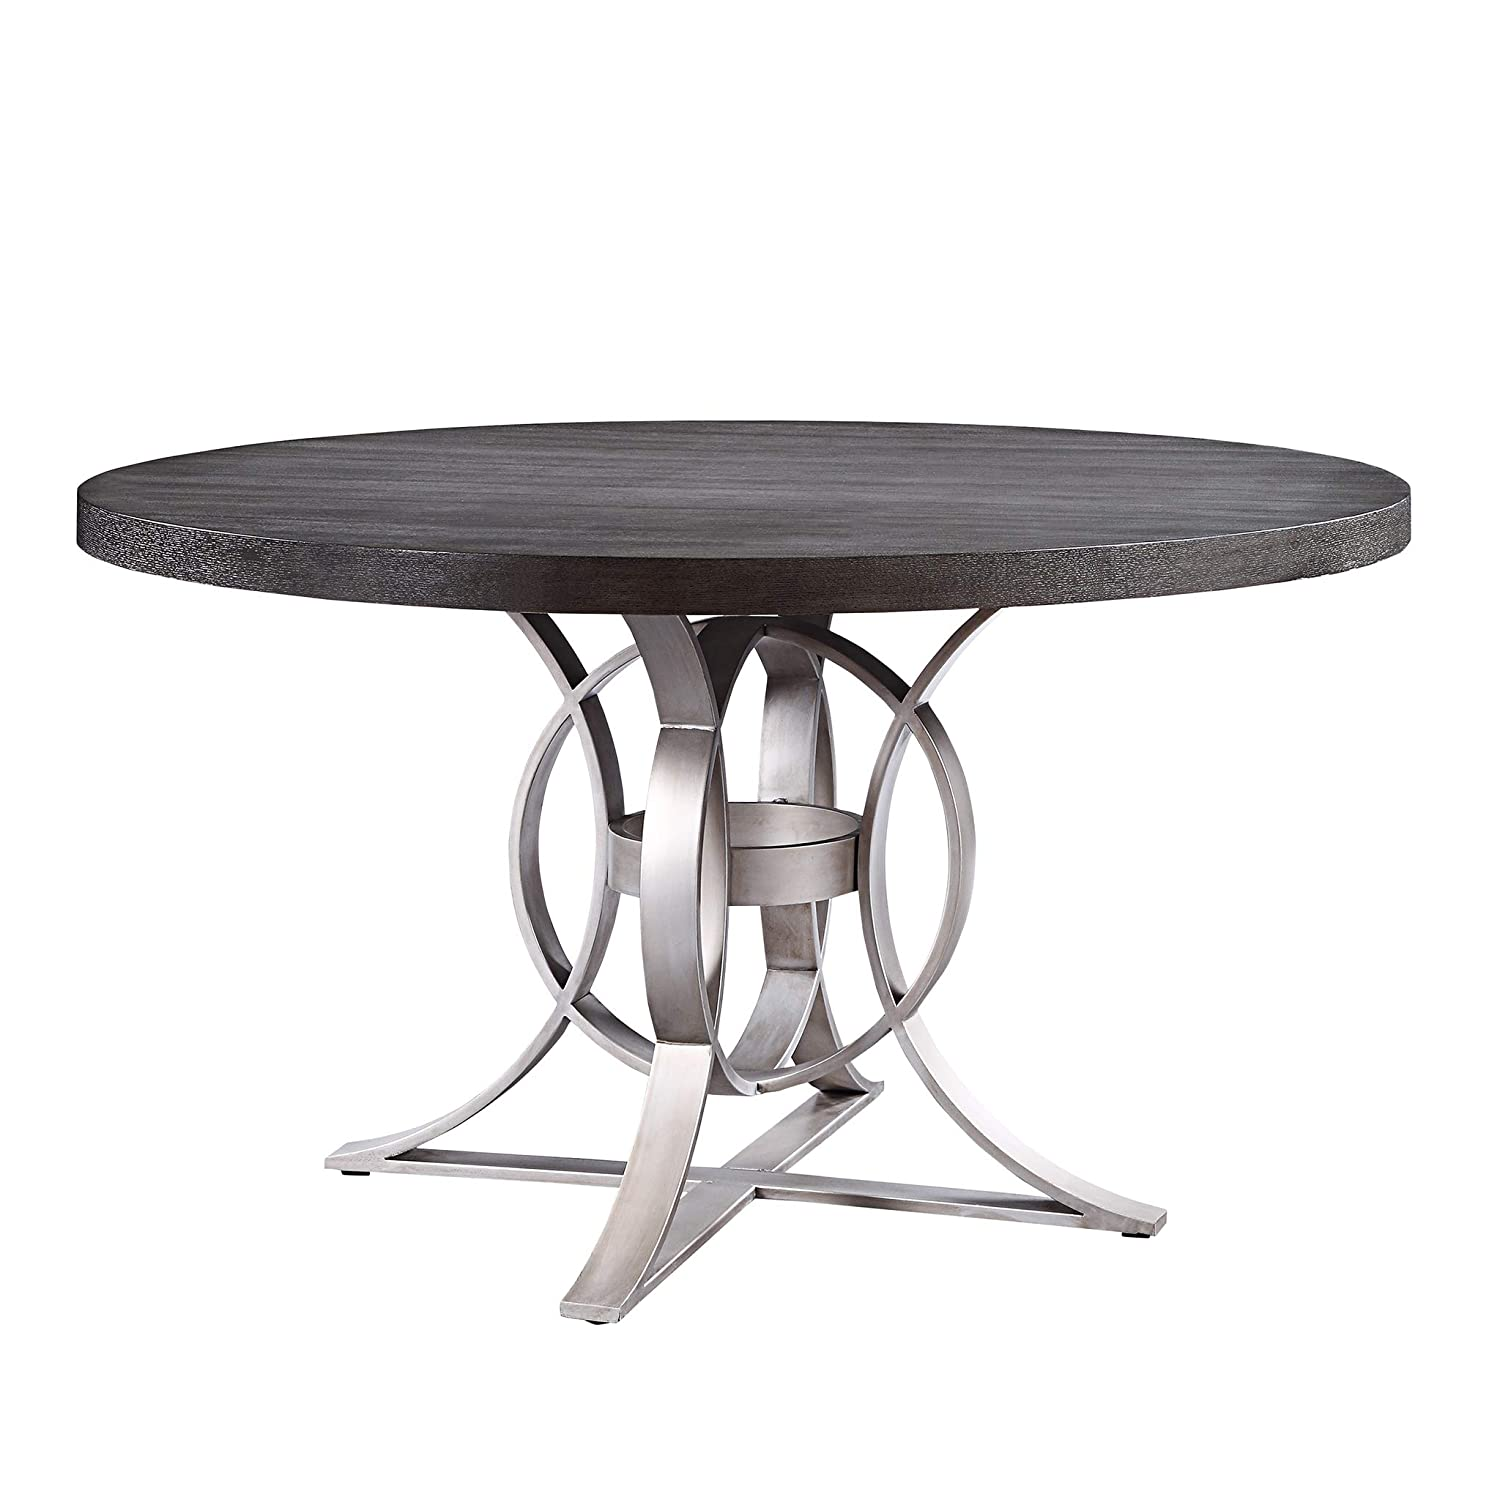 Homelegance Round Dining Table, 53.5 Gray